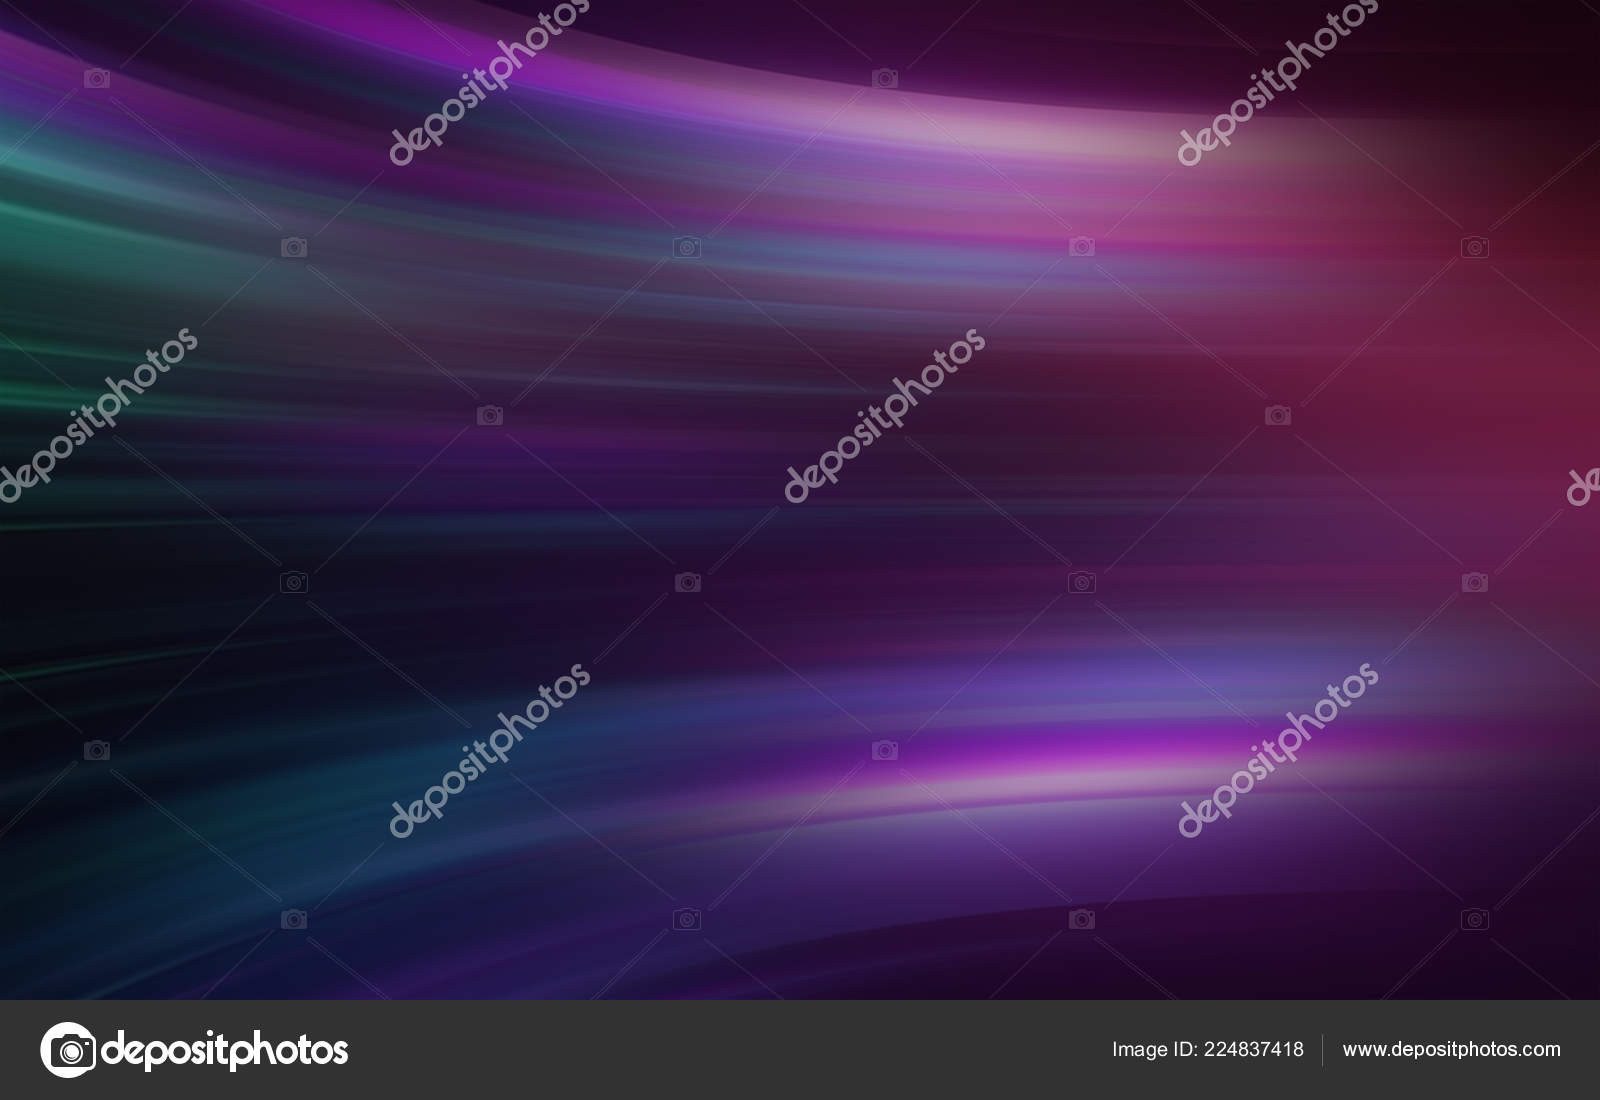 Wallpapers Pink And Purple Colorful Blue Pink Purple Abstract